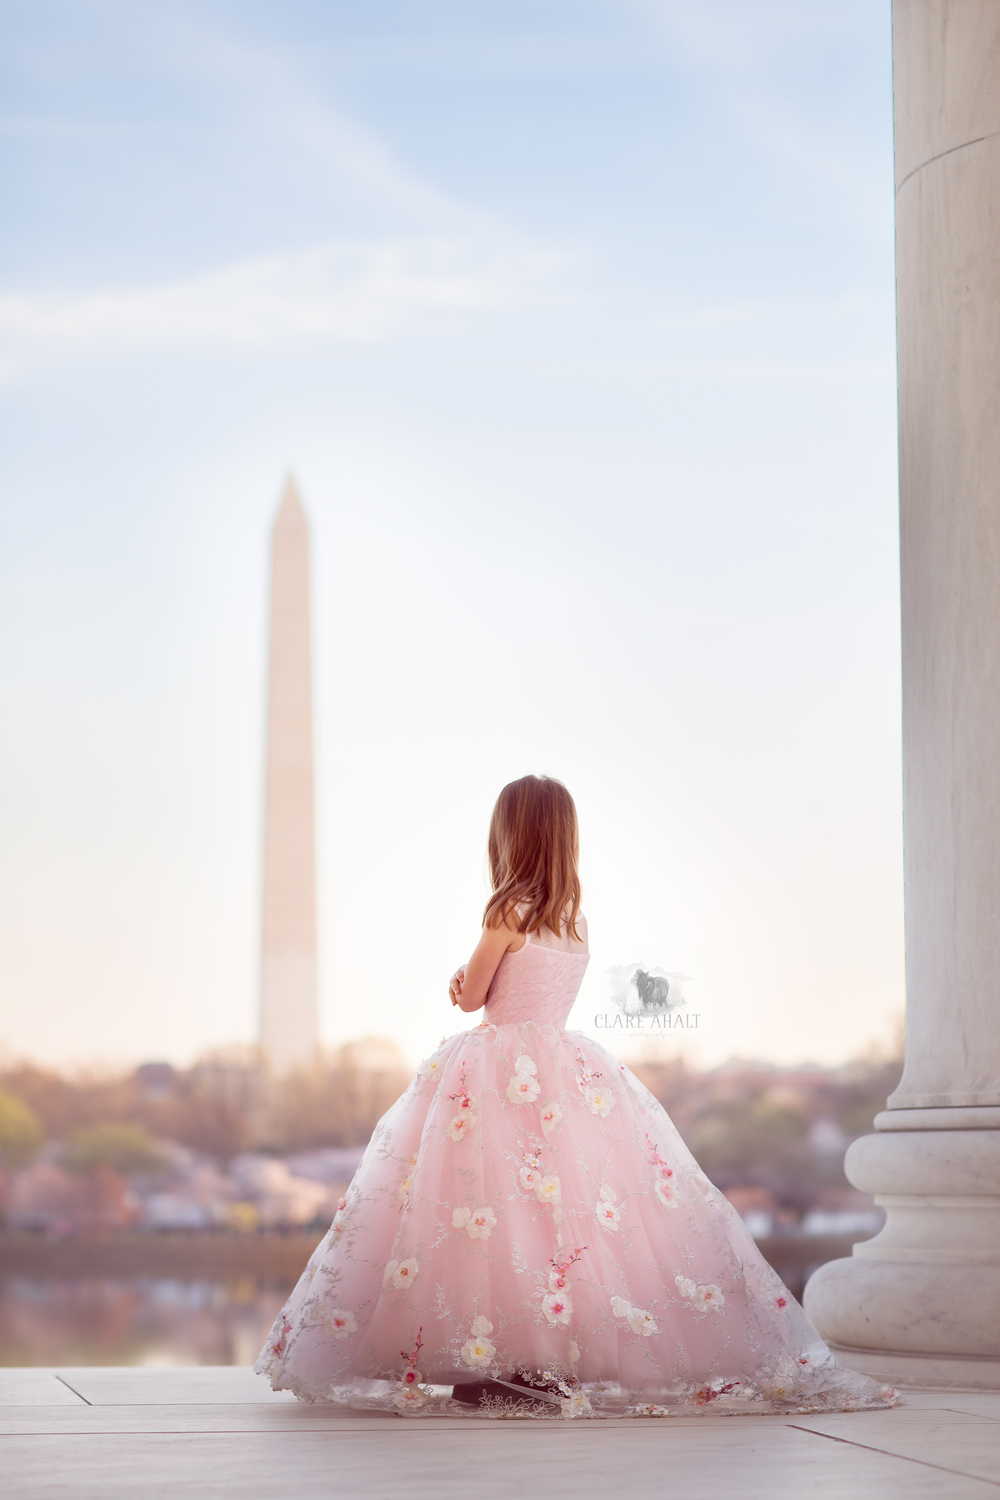 Clare Ahalt Photography   |  Washington DC, Virginia and Maryland Professional Portrait Photographer